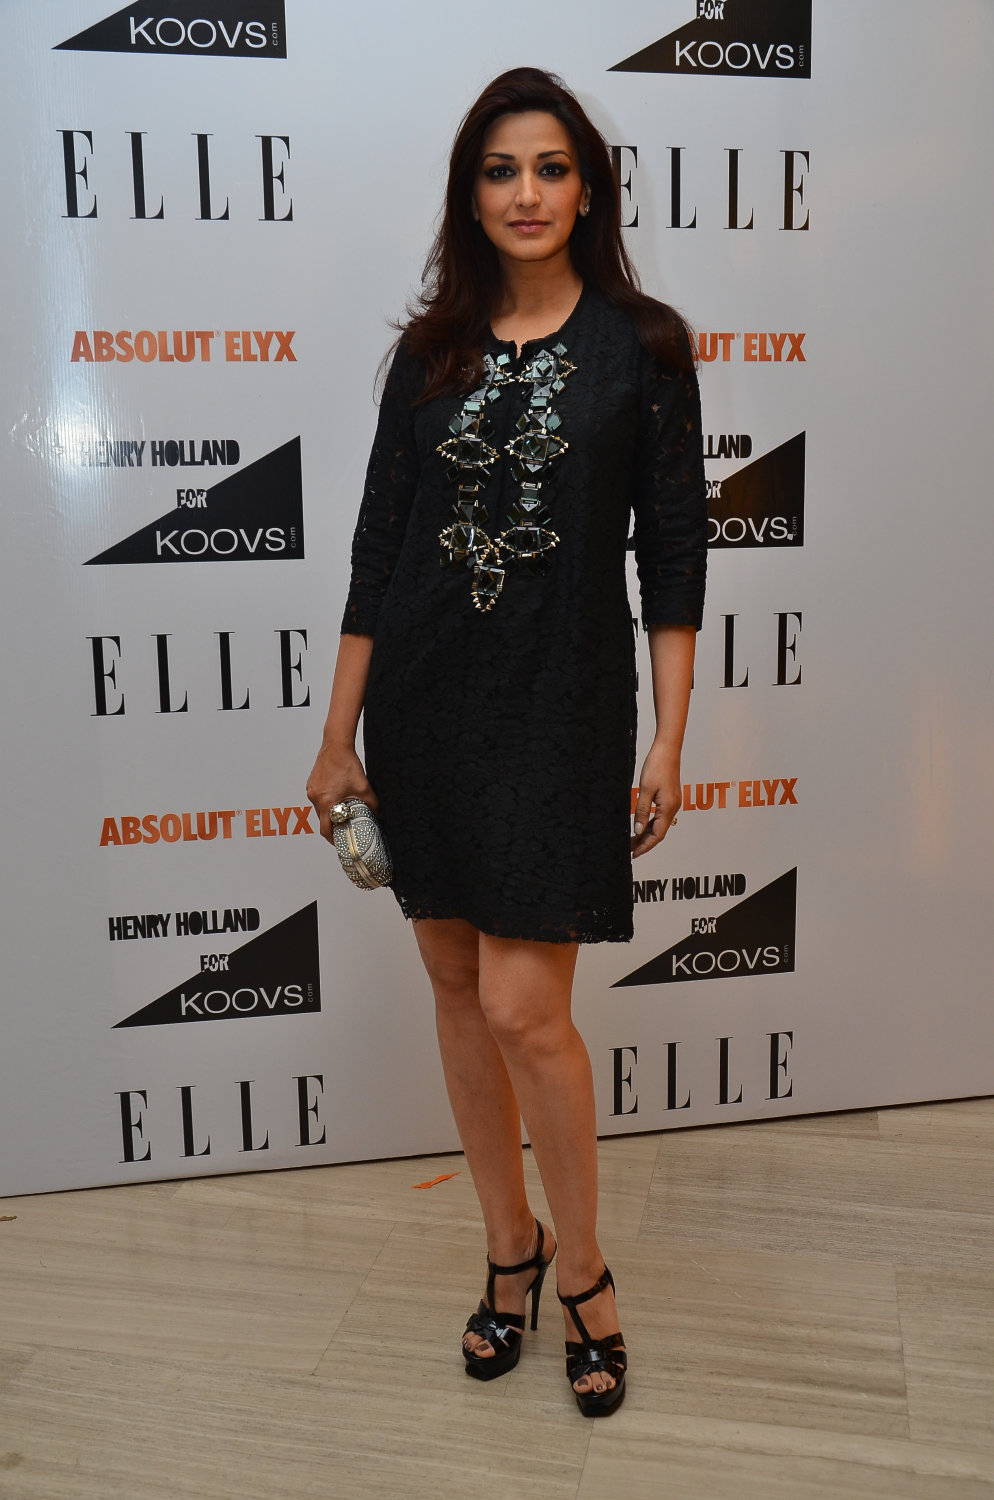 Sonali Bendre in Surily Goel